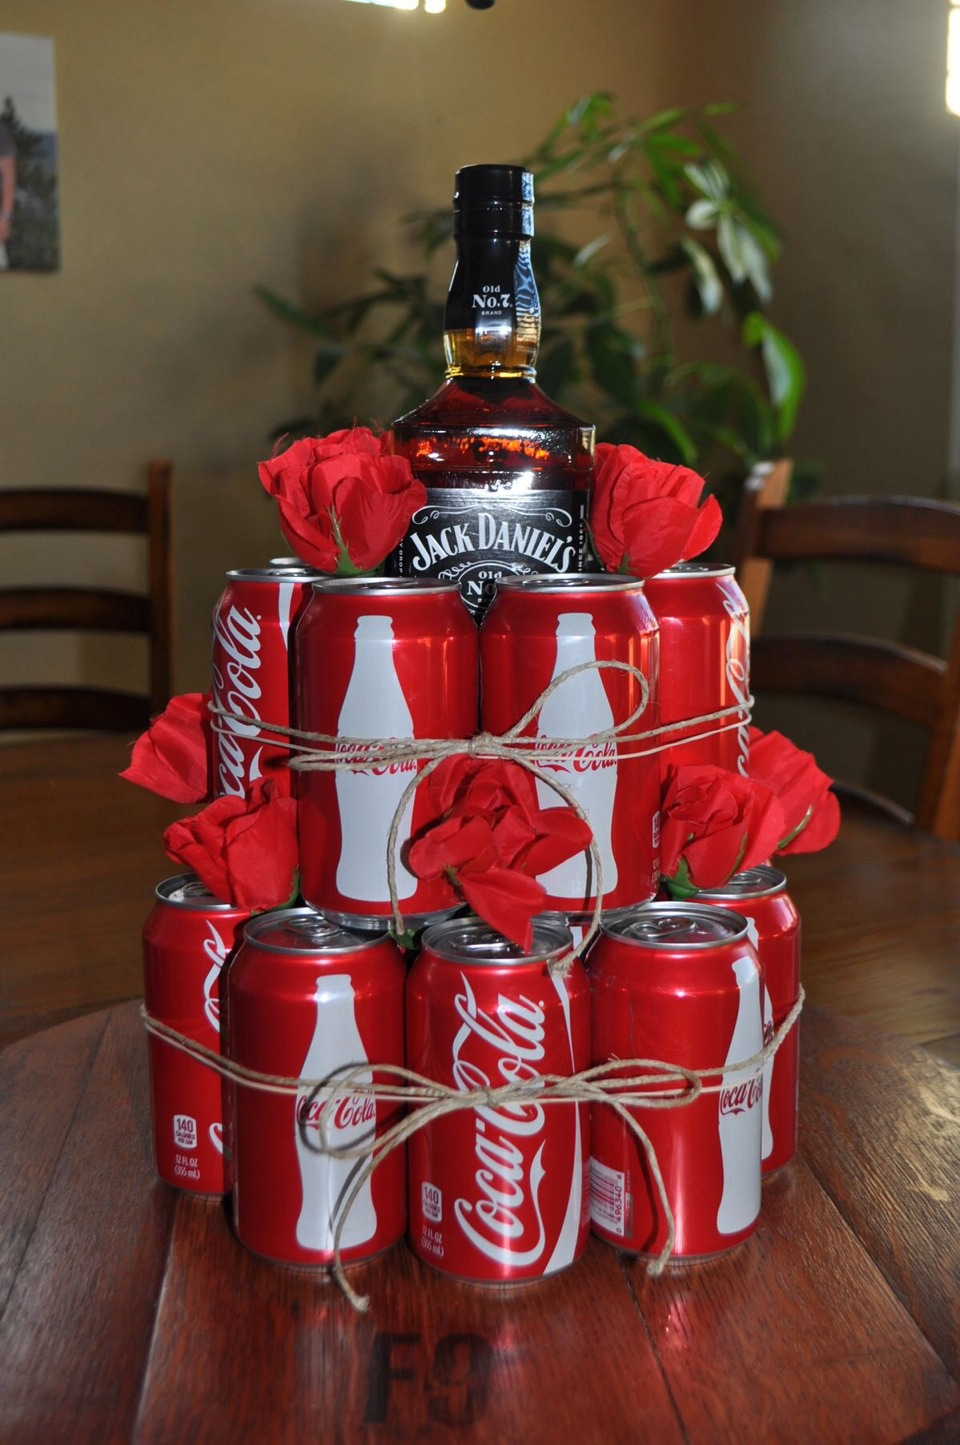 This would make a great gift for the hubby or maybe as a bachelor/bachelorette party idea! 😊👍